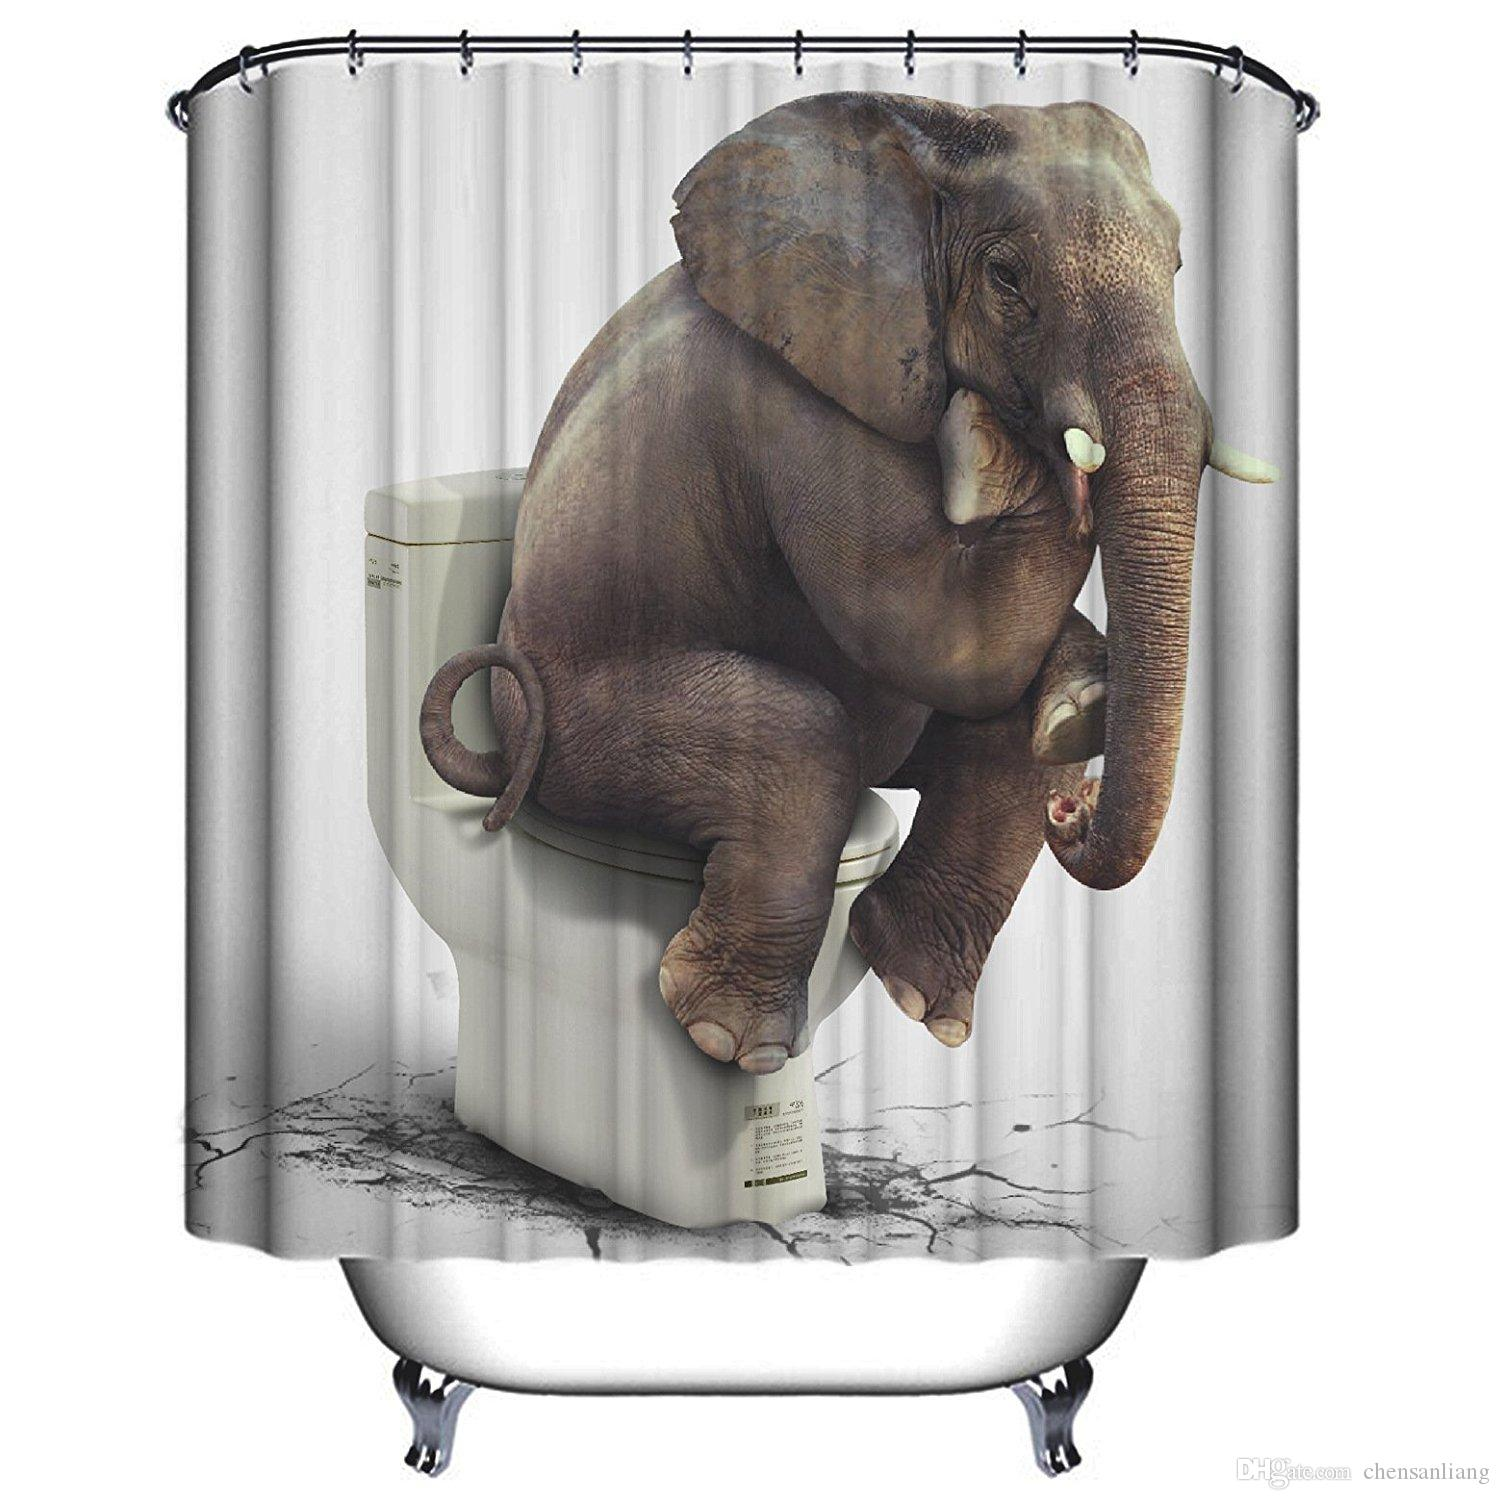 Shower Curtain Funny Elephant Sitting On Toilet Bathroom Polyester Curtains Waterproof Antibacterial With 12 Hooks Bath Canada 2019 From